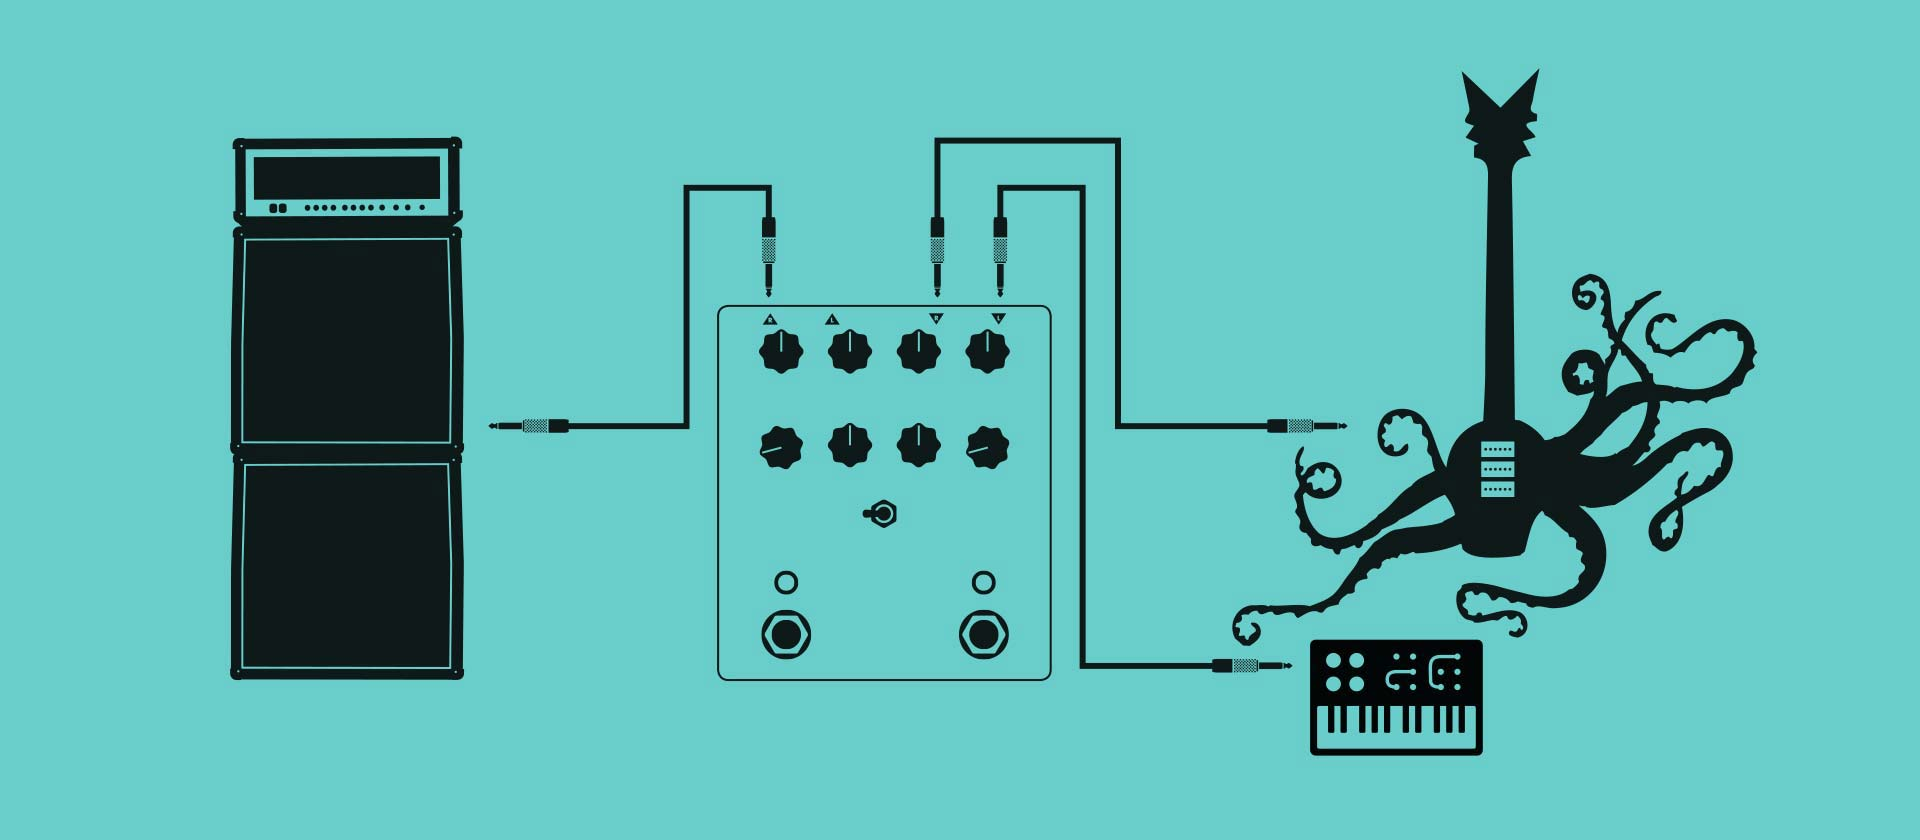 Pro Tip  In Trigger Up/Down modes, you may re-trigger the flanger using an external source in what we call  Side Chain Flanging . To trigger Pyramids using an external source, plug your  primary instrument  (the signal on which you want to hear the flanger) into the Right Input and connect Pyramids' Right Output to your amplifier or DAW. Connect the  external trigger source  (drum machine, sequencer, or CV) to Pyramids' Left Input. To hear only the affected primary instrument signal (as modulated by the external trigger source), do not connect the Left Output. Your primary instrument's signal will pass through Pyramids' Right Input / Output, but the flanger will react to changes in the external trigger signal instead of your primary instrument. To monitor the trigger source, connect Pyramids' Left Output to a separate amplifier or DAW input.